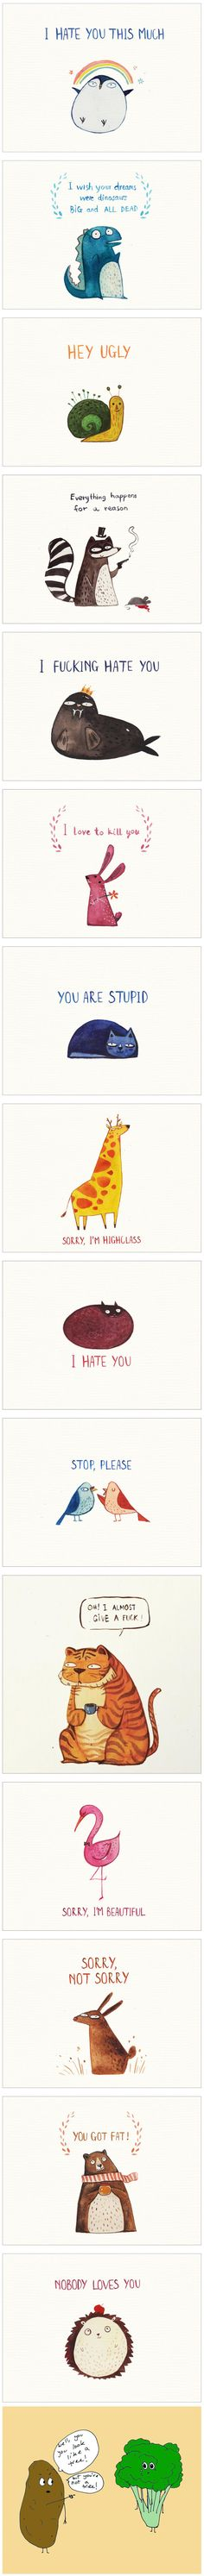 15 Postcards For Your Enemies